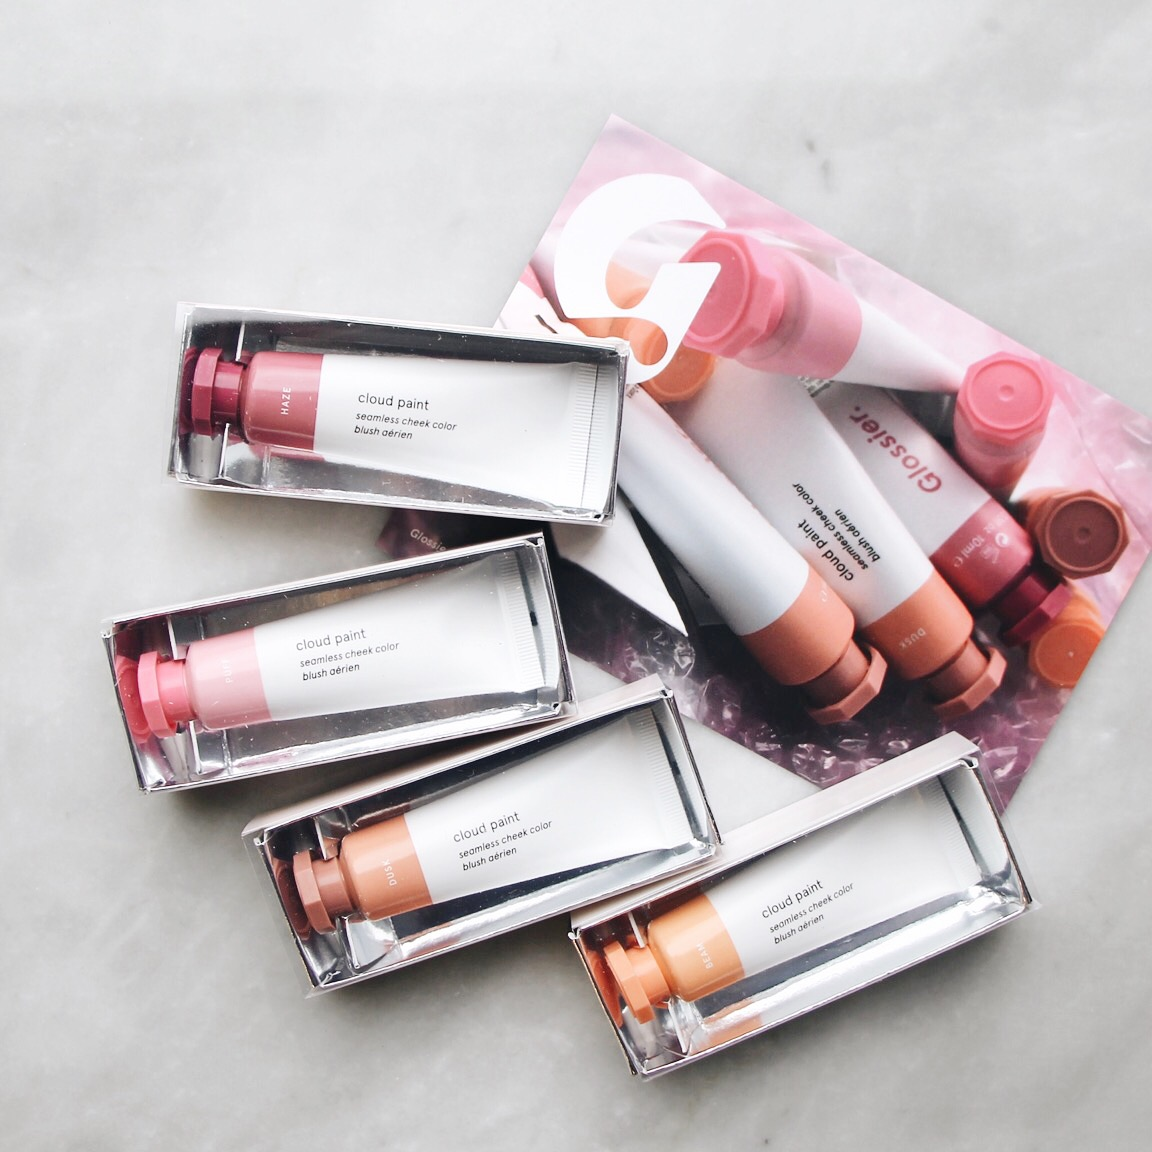 Glossier, Glossier Discount, Glossier Cloud Paint, Cloud Paint Blush, Cloud Paint Review, Glossier Review